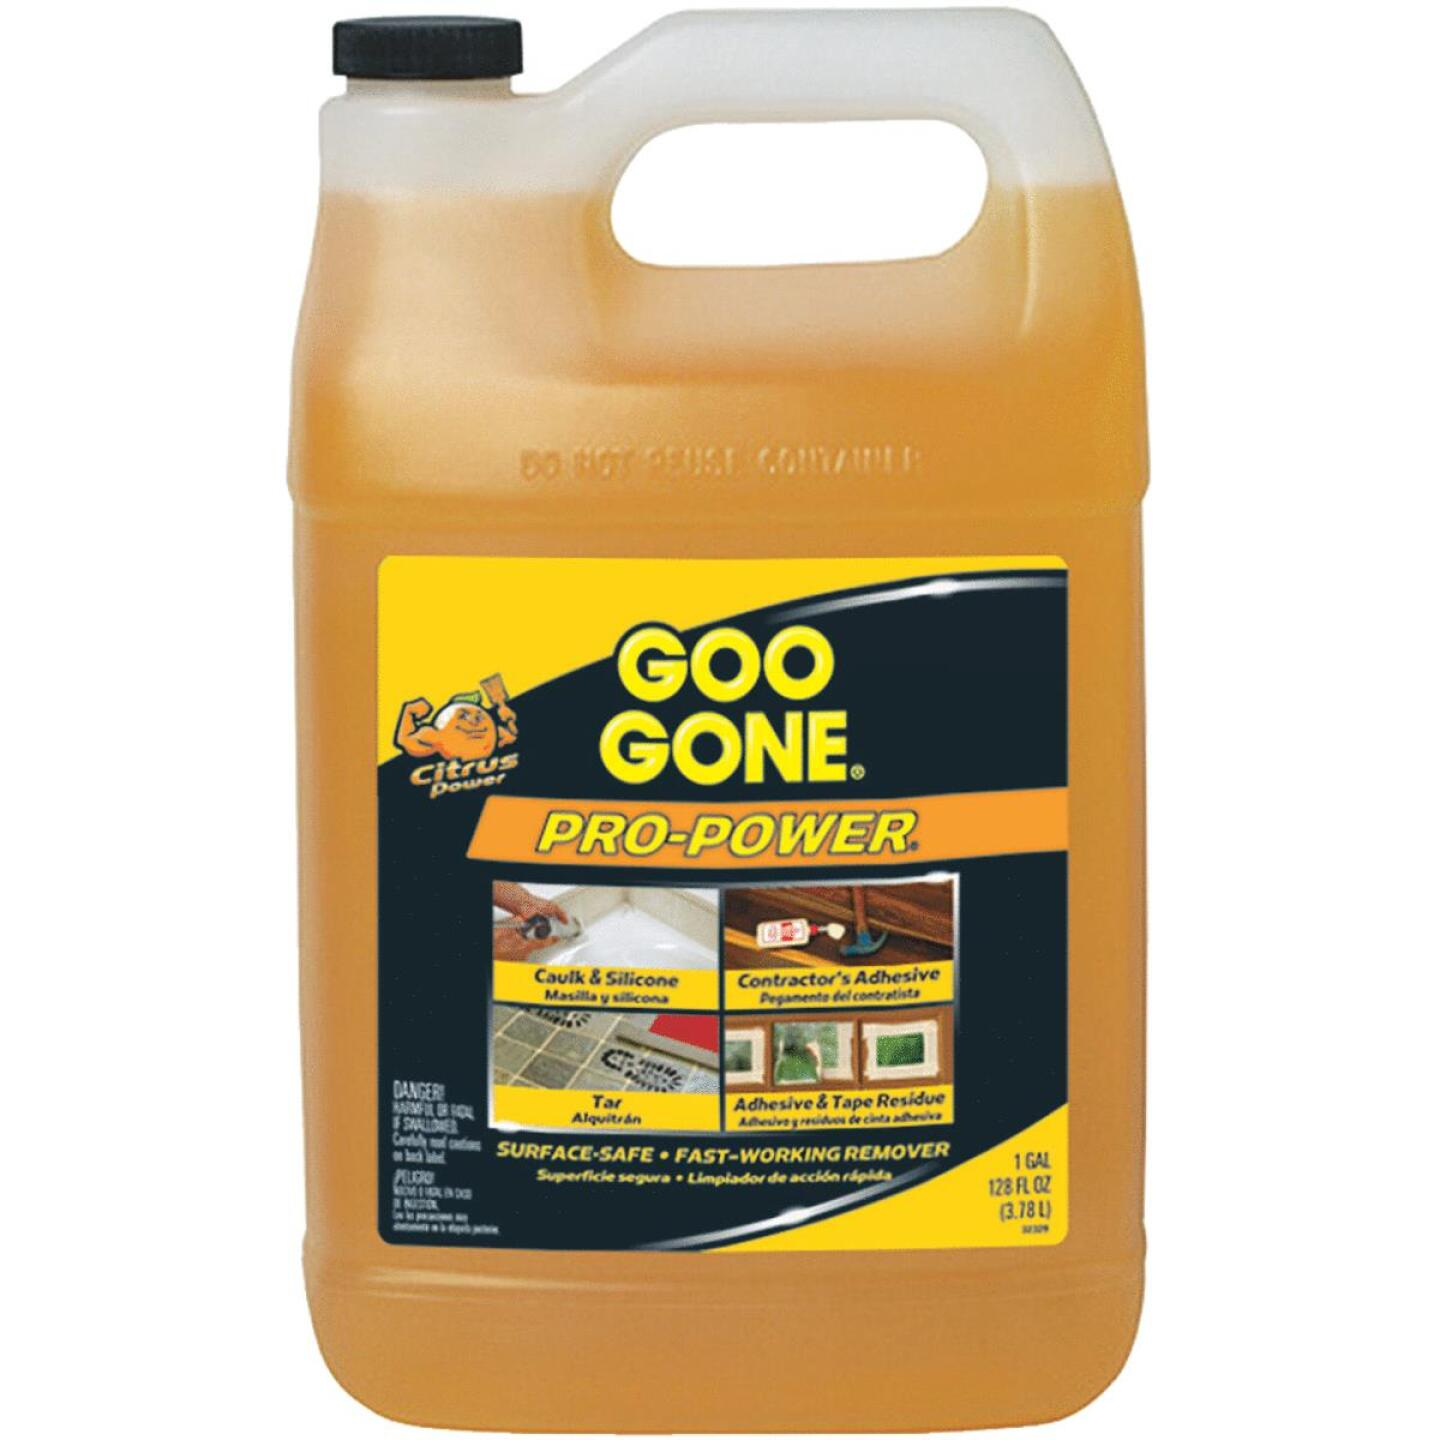 Goo Gone 1 Gal. Pro-Power Adhesive Remover Image 325